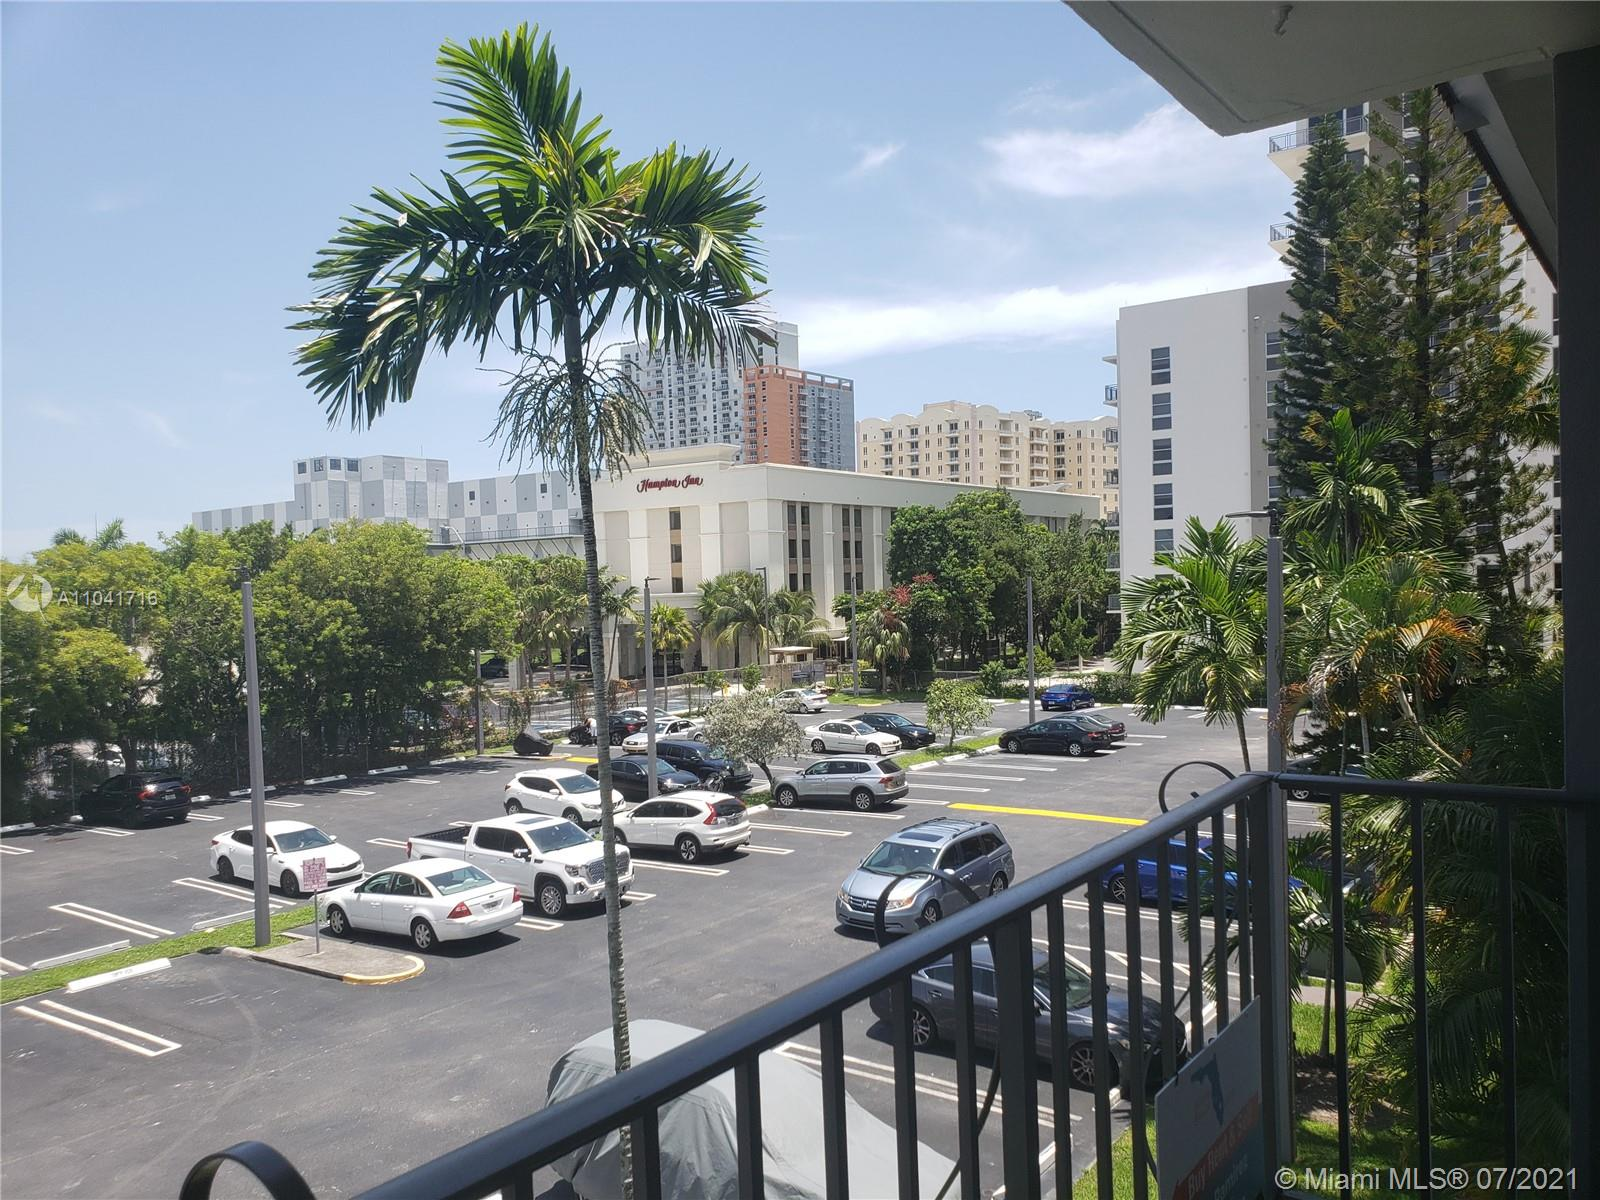 LOCATION LOCATION LOCATION! GREAT UNIT ***COME AND SEE IT FOR YOURSELF** THIS IS A 2 BEDS 2 BATHS WITH A LOT OF CLOSET SPACE, LAUNDRY ROOM JUST A COUPLE OF STEPS FROM THE UNIT, NICE BALCONY VIEW, AND A VERY WELL MAINTAINED POOL. WALKING DISTANCE TO DADELAND MALL, DOWNTOWN DADELAND, RESTAURANTS, METRO RAIL, US 1, AND PALMETTO EXPRESSWAY. CONDO ASSOCIATION INCLUDES EXTERIOR /COMMON AREA, ROOF & STRUCTURAL INSURANCE, WATER & SEWER, AND BASIC CABLE T.V.  SELLER VERY MOTIVATED BRING YOUR BEST OFFER!